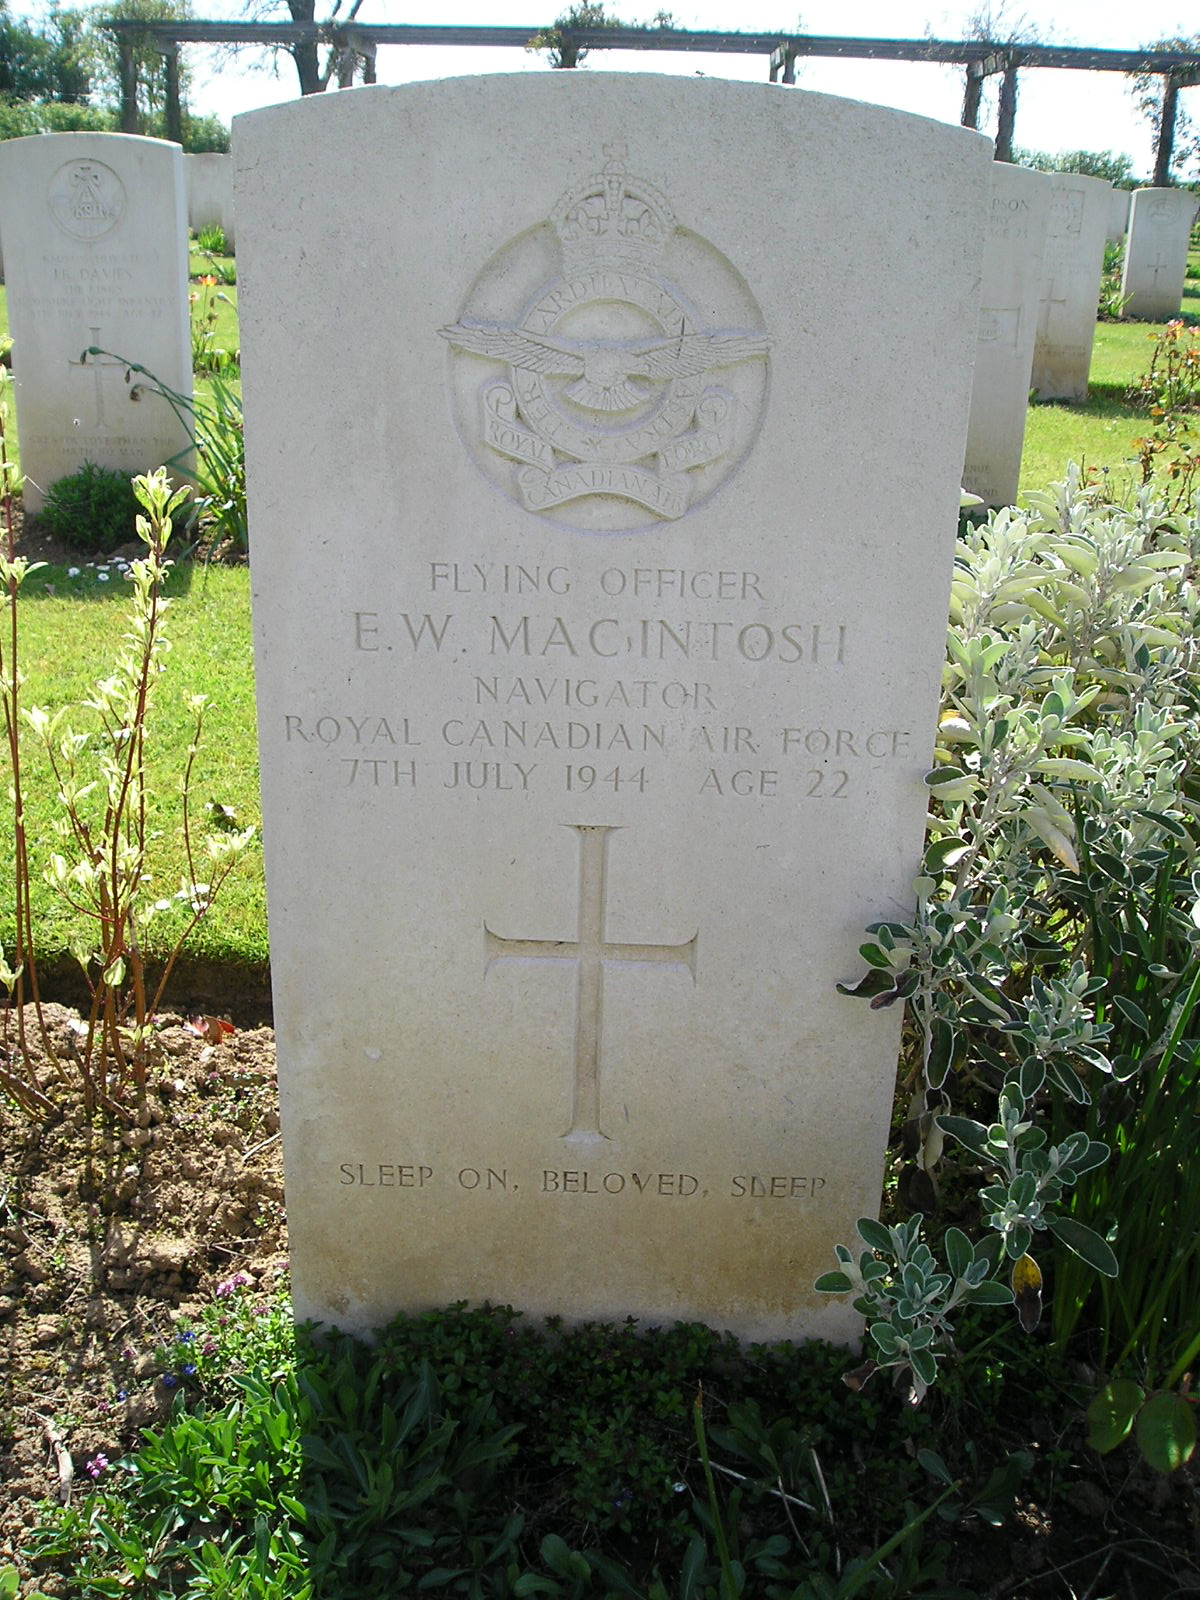 Grave Marker– Ernest William MacIntosh, from Trenton, Nova Scotia lies in Banneville-la-Campagne War Cemetery which is found on the D675 about 10 km east of Caen.